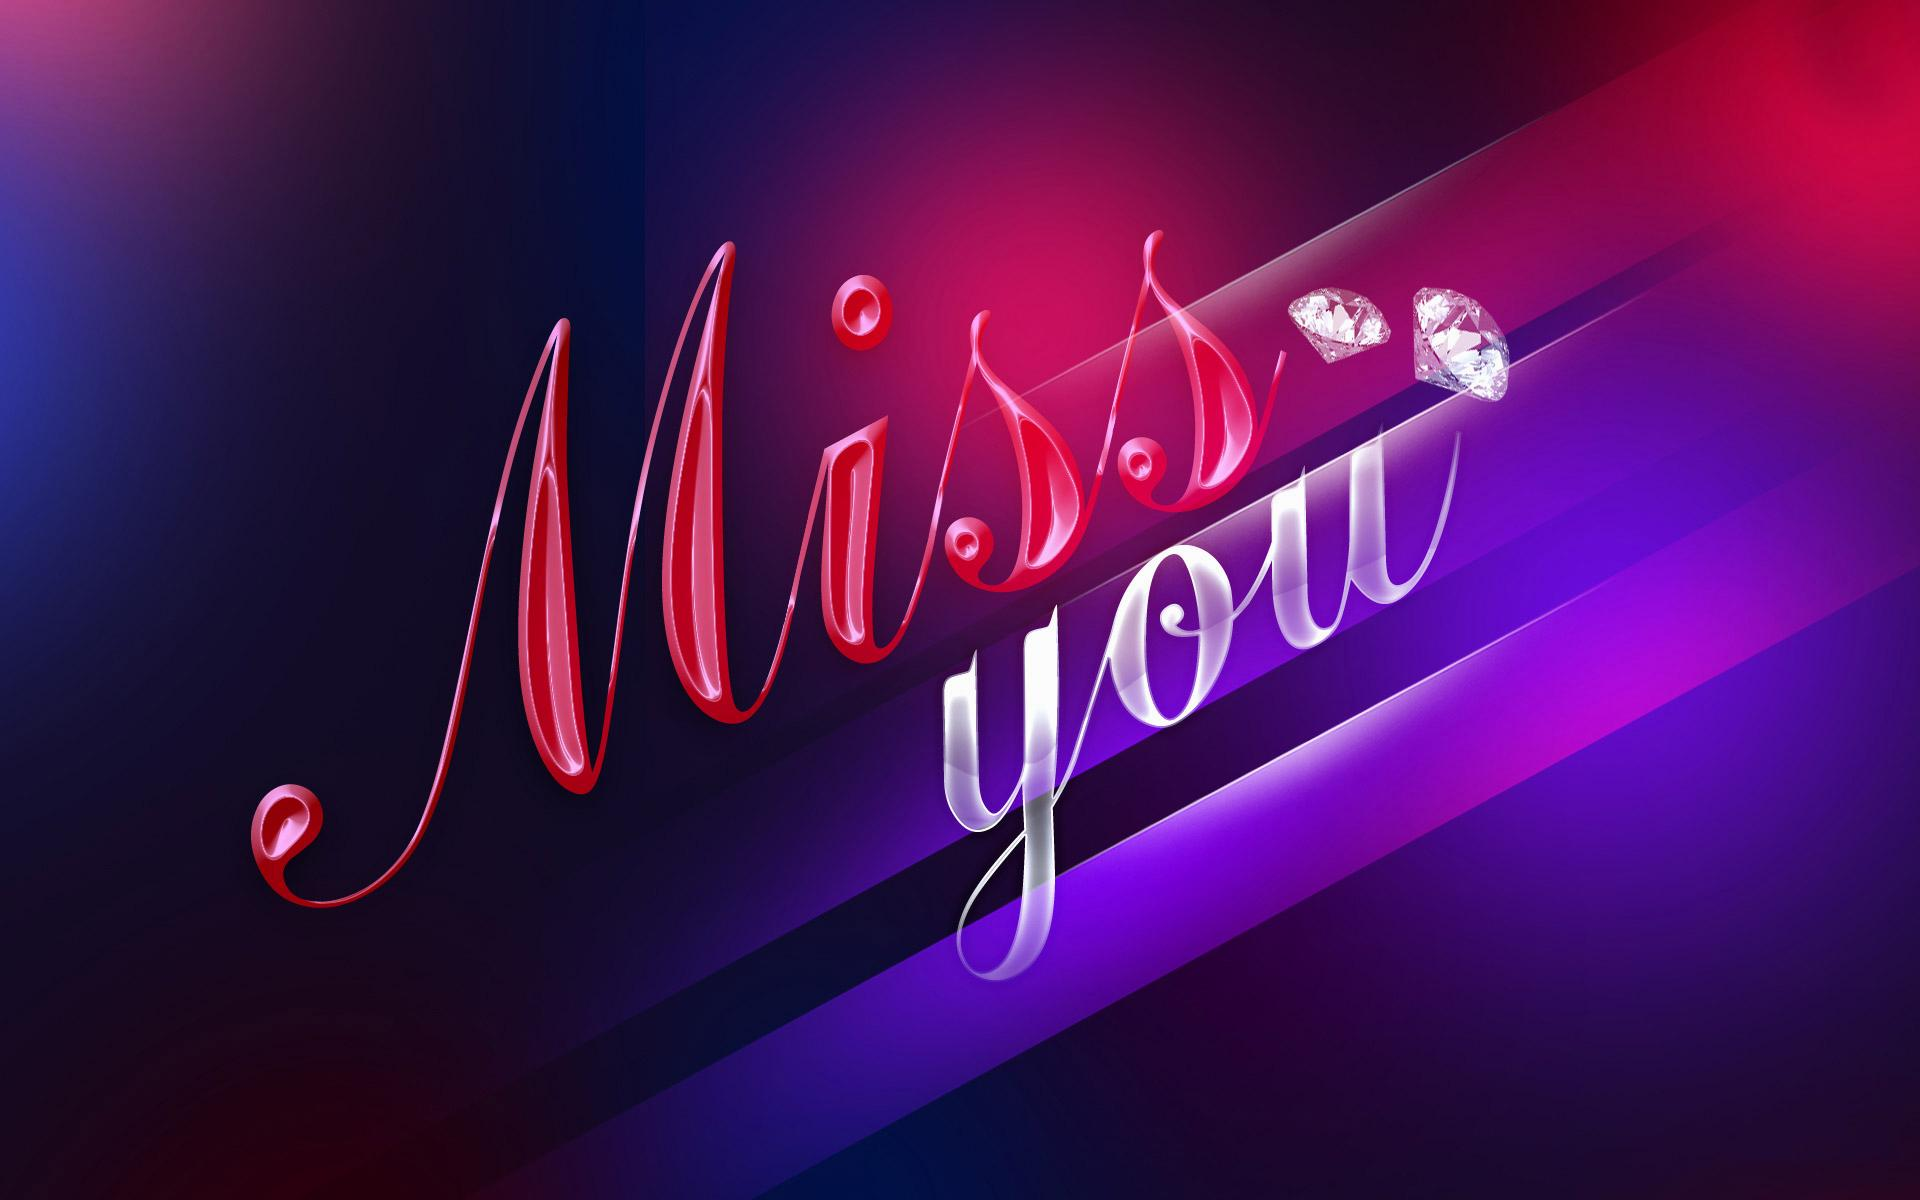 Top I Miss You Quotes Pics And Wallpapers Hd 1920x1200